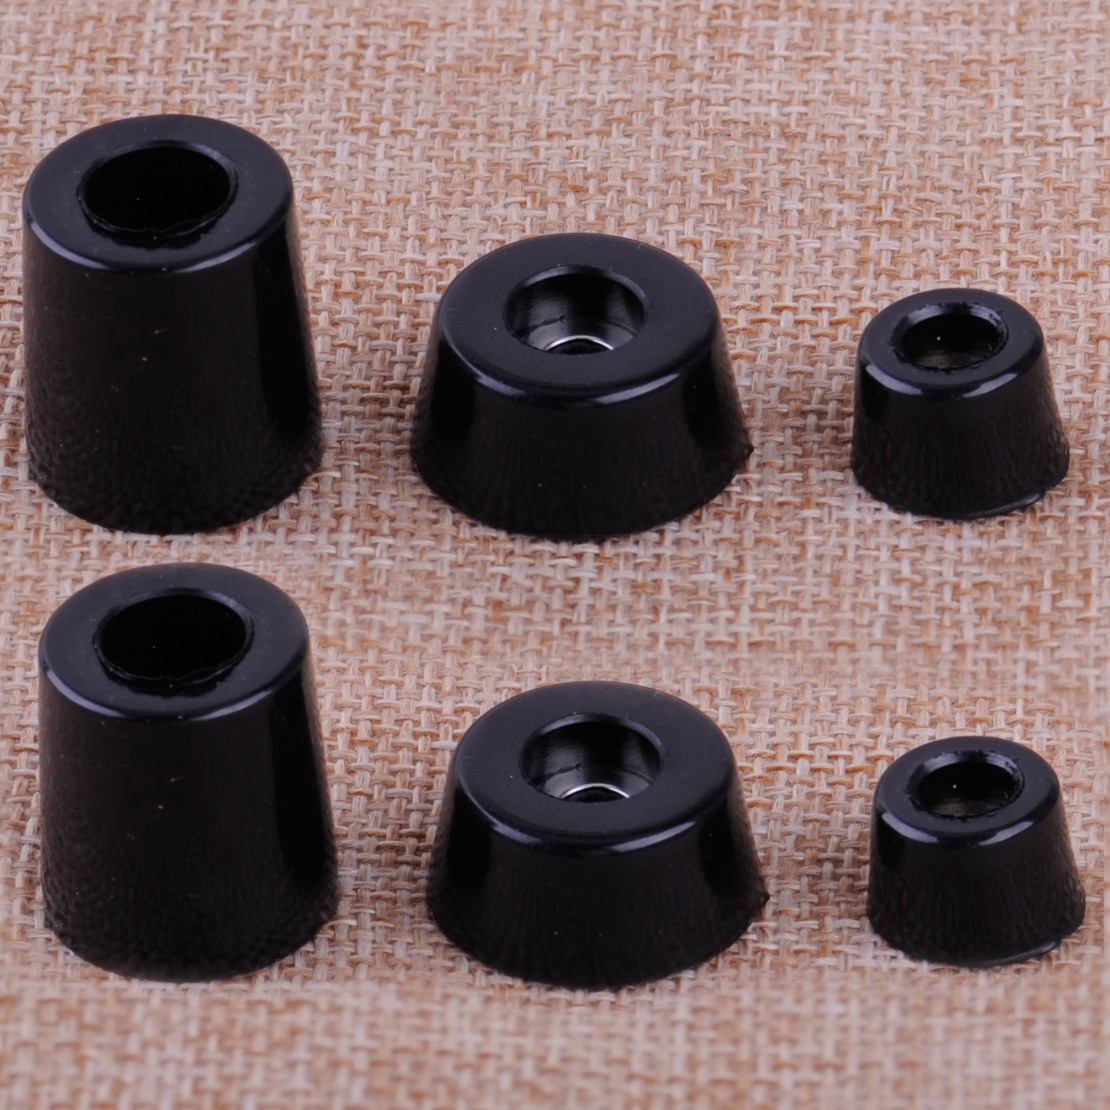 8pcs Black Speaker Cabinet Furniture Chair Table Box Conical Rubber Foot Pad Stand Shock Absorber S / M / L Skid Resistance antik siyah kulp